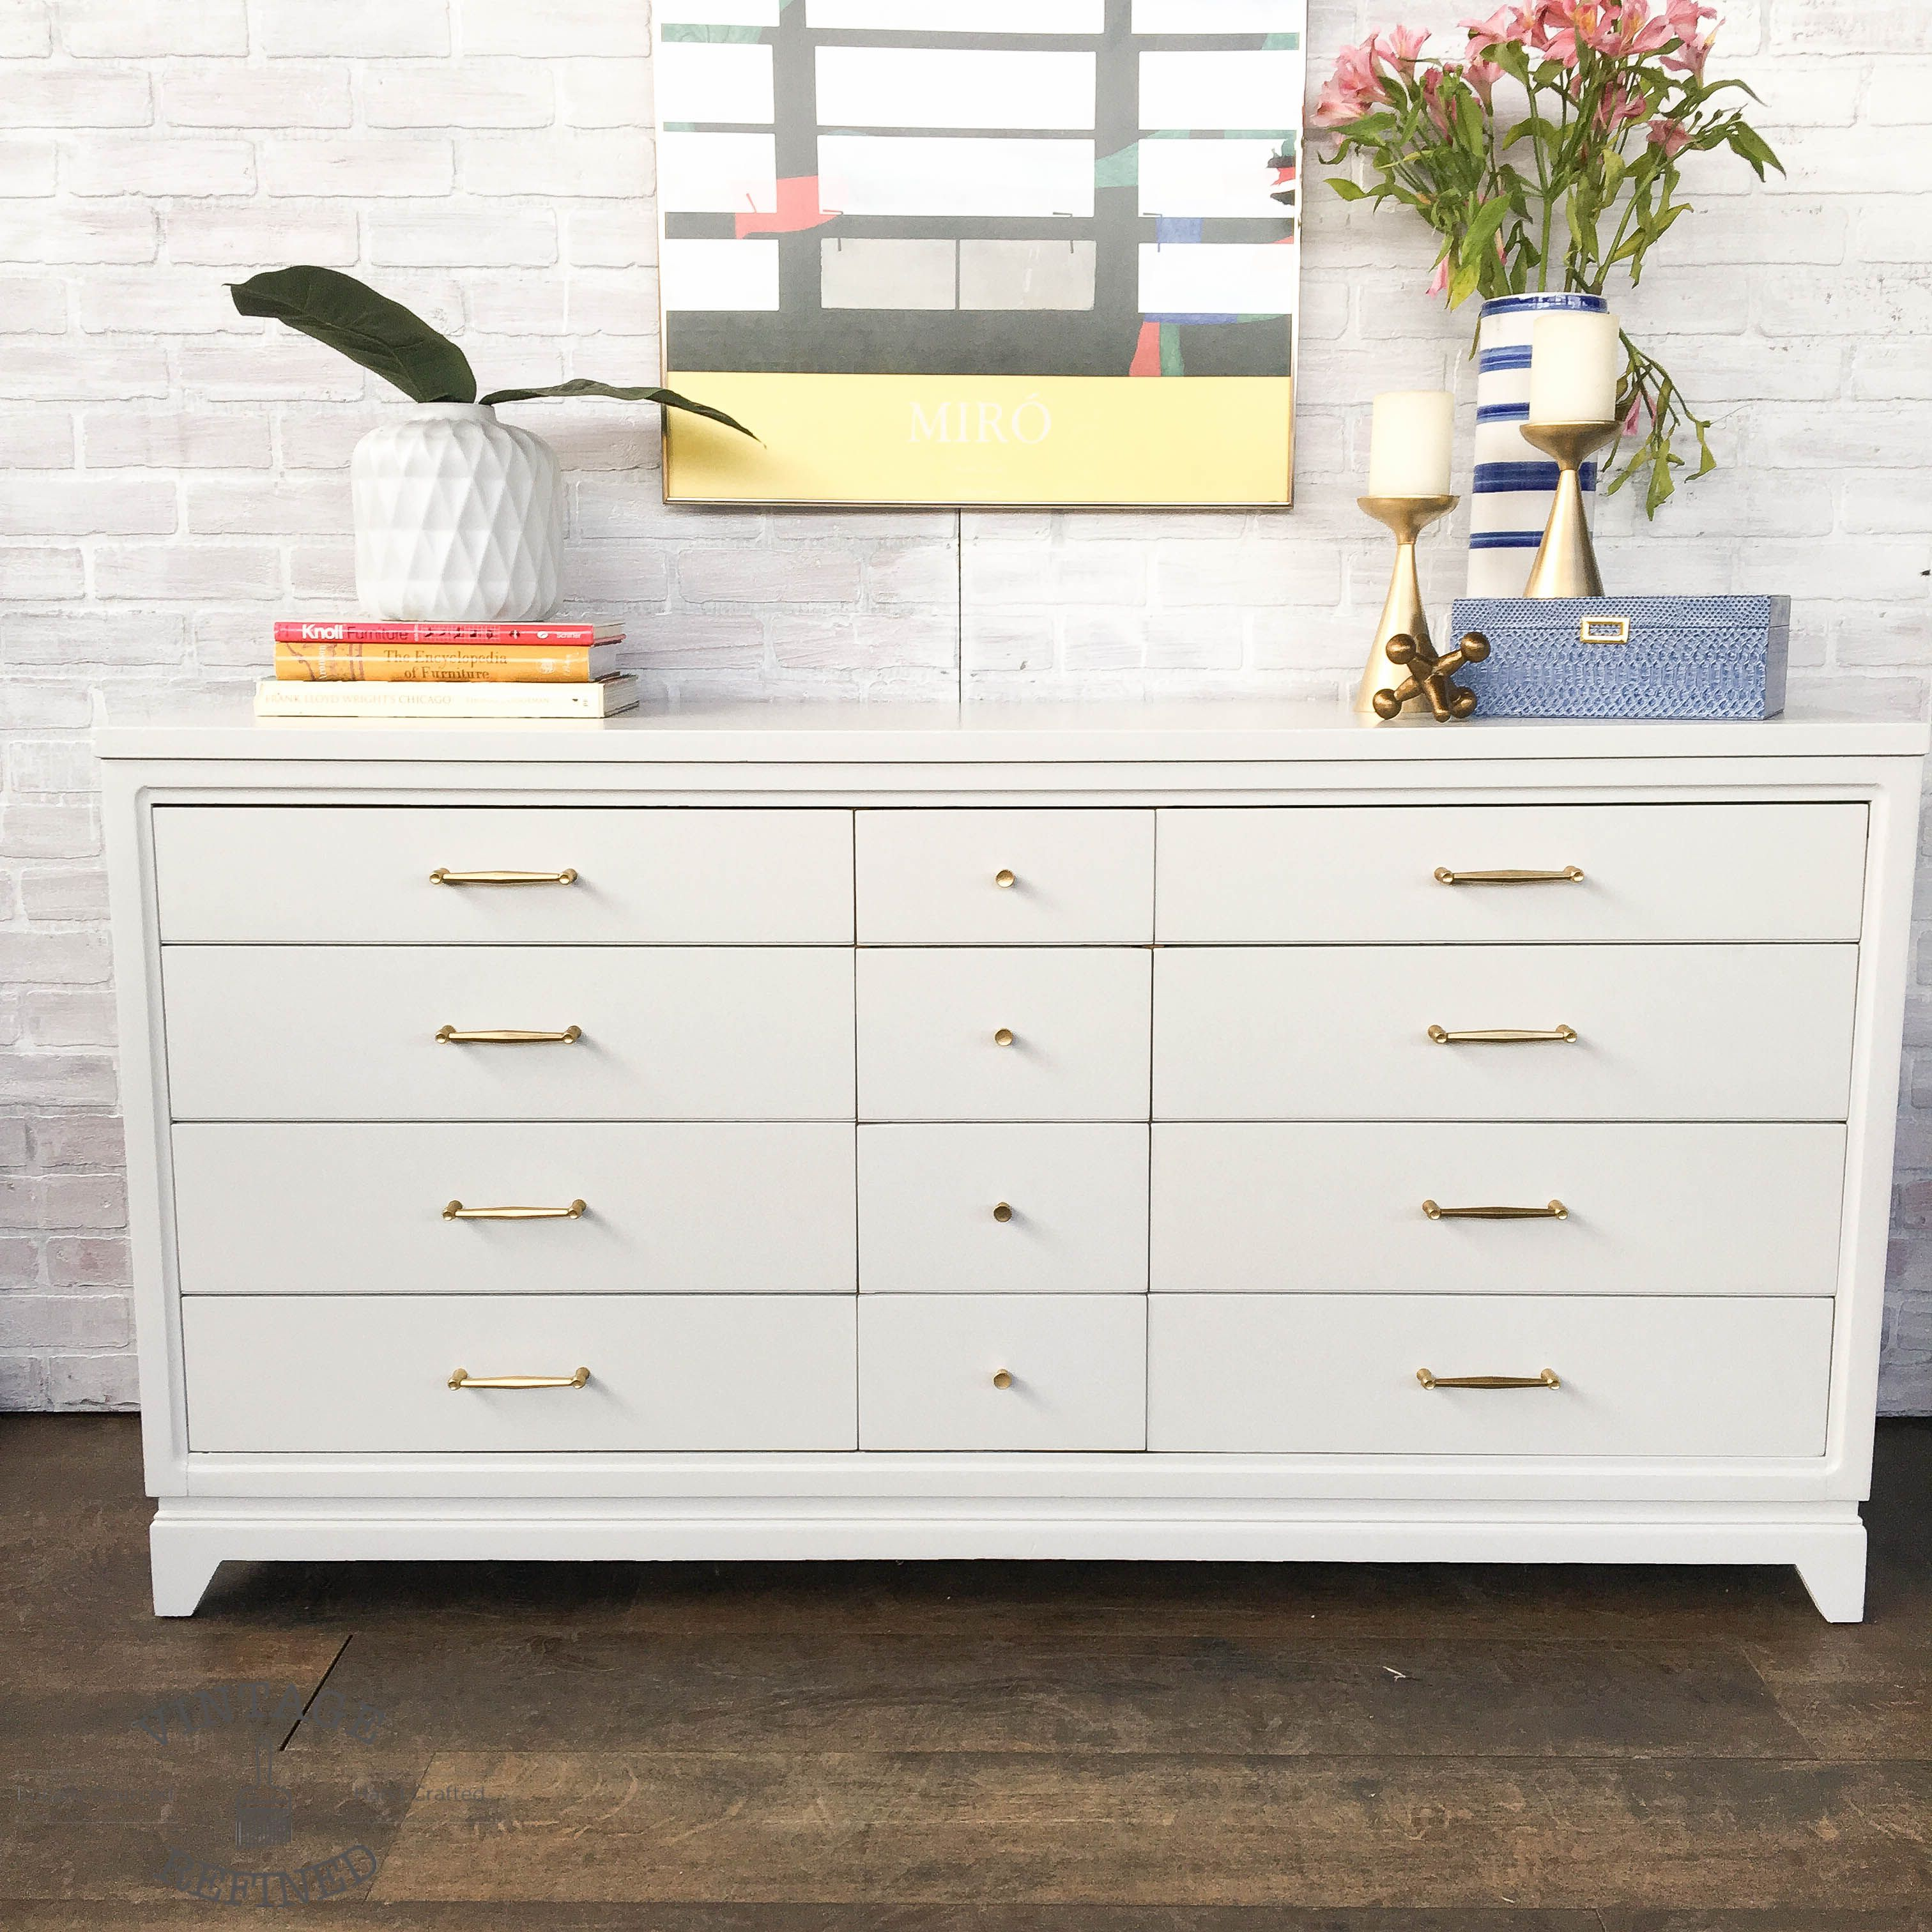 White Painted Mcm Dresser With Gold Hardware